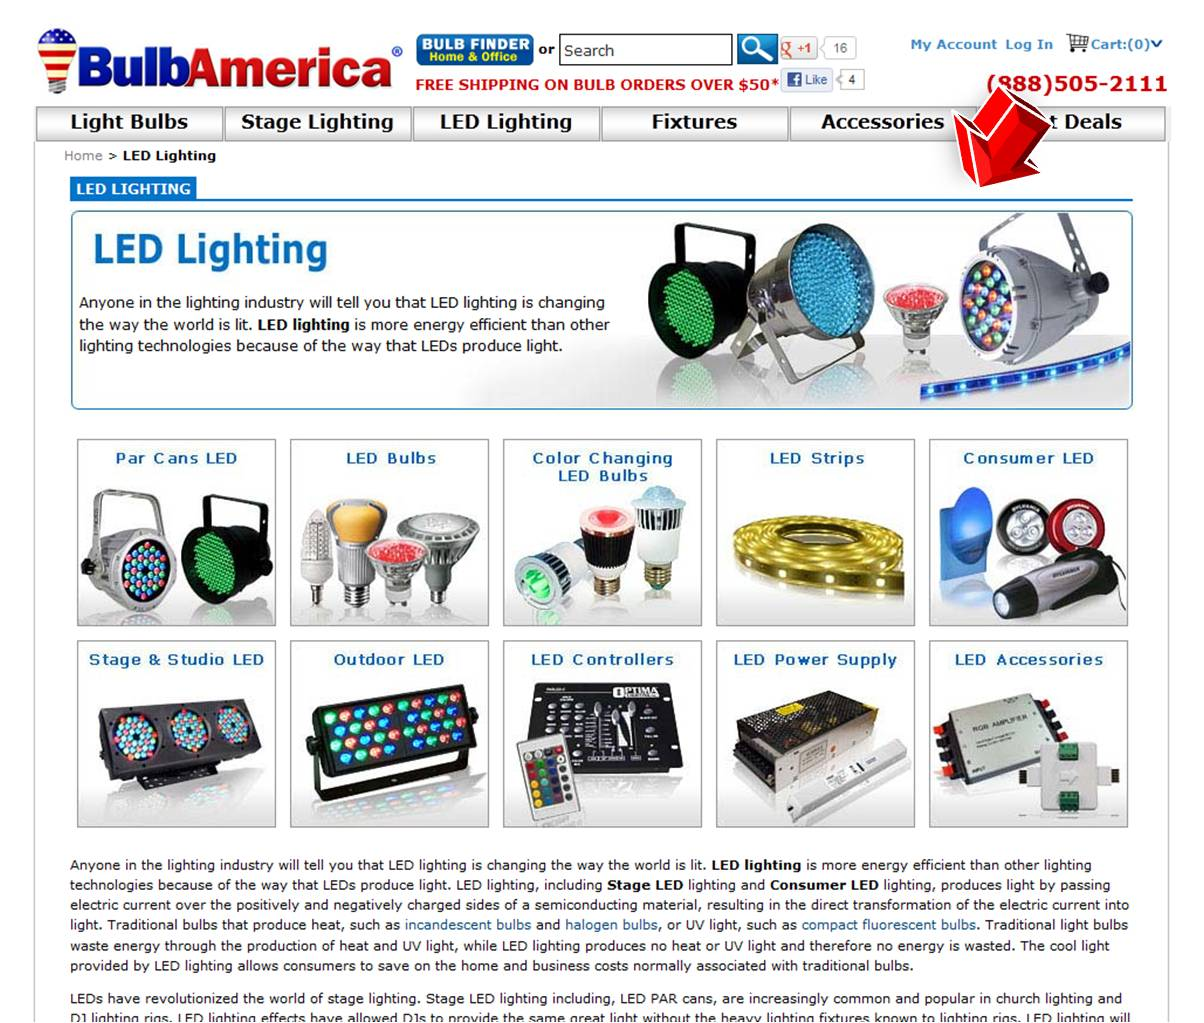 Bulbamerica discount coupon